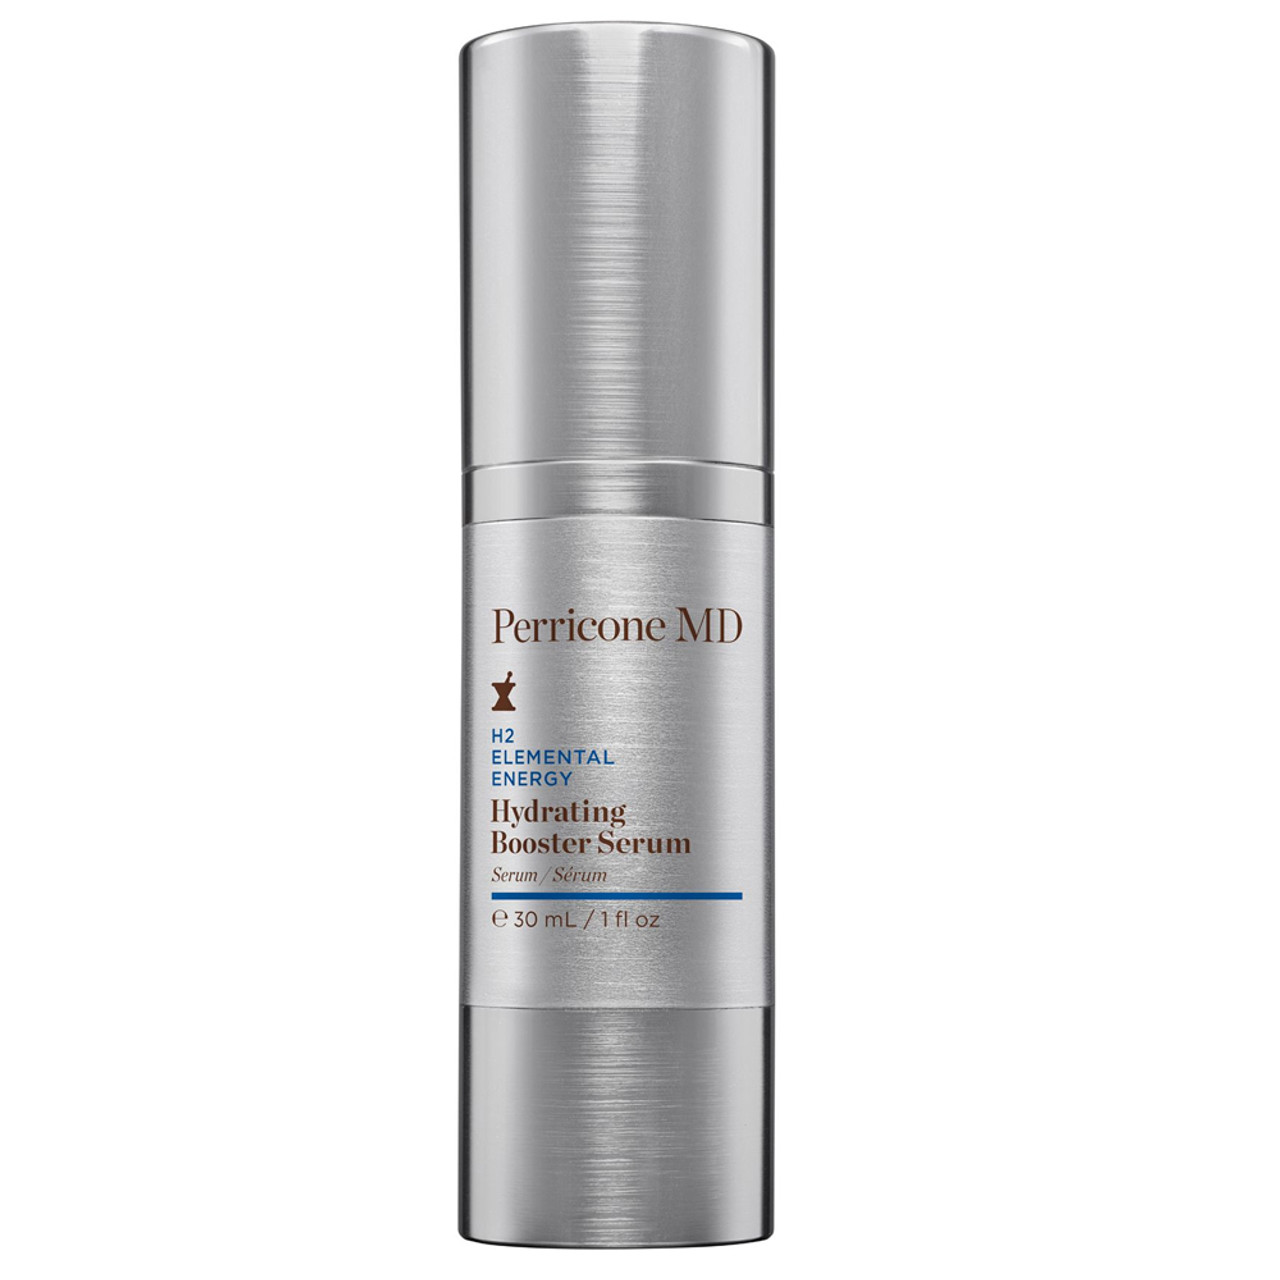 Perricone MD H2 Elemental Energy Hydrating Booster Serum (discontinued) BeautifiedYou.com